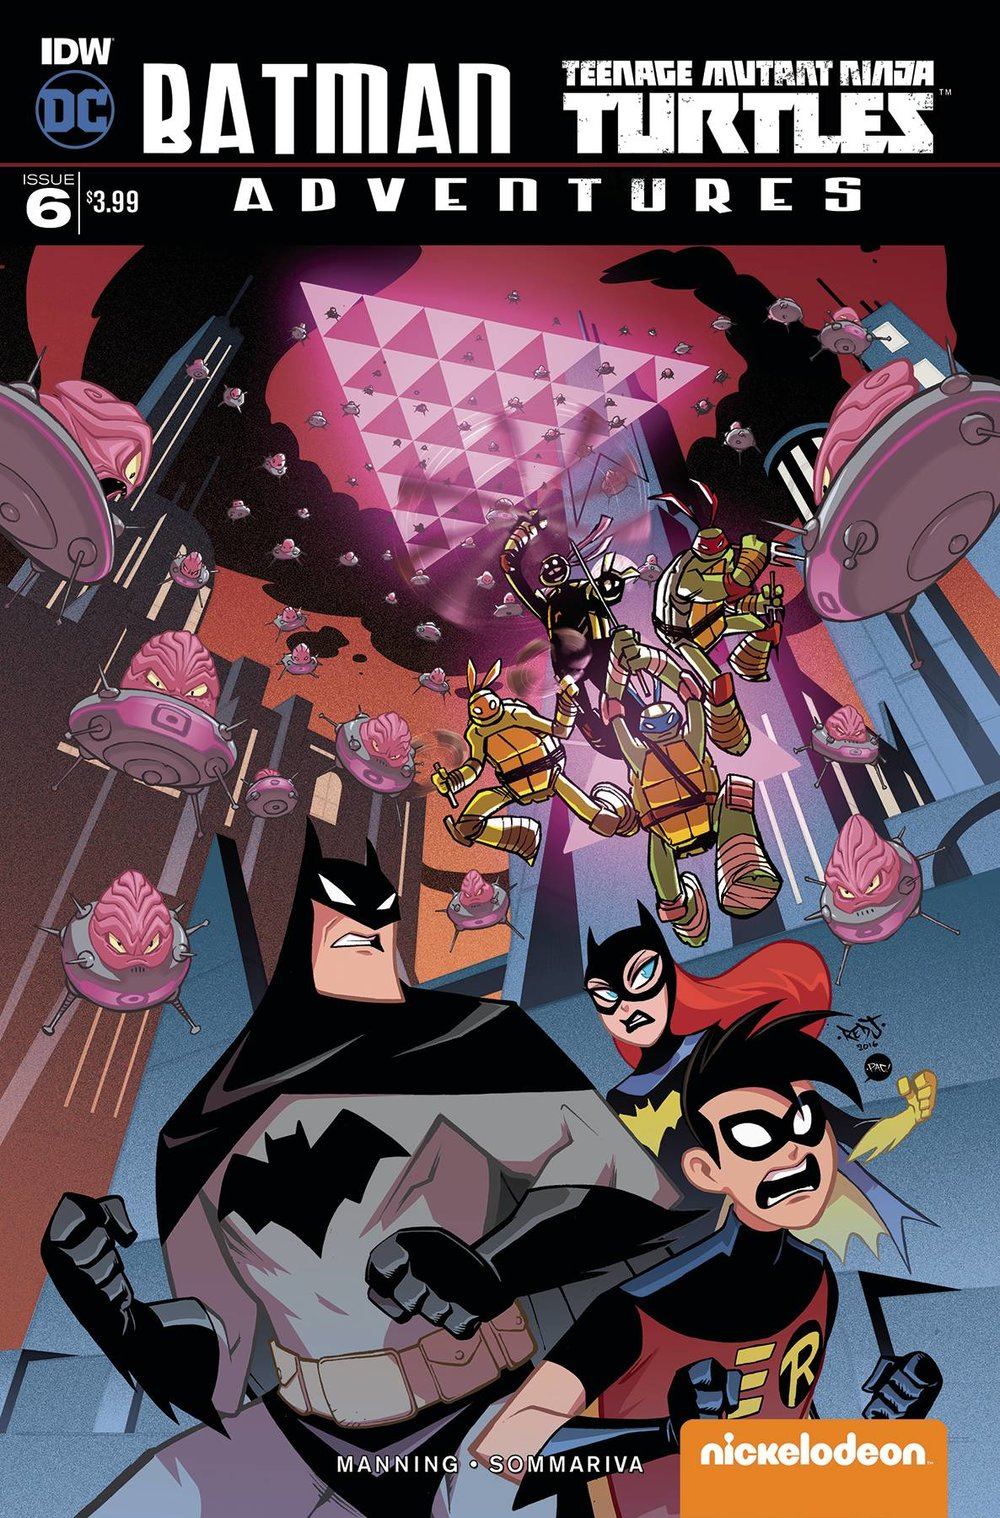 BATMAN TMNT ADVENTURES 6 of 6.jpg